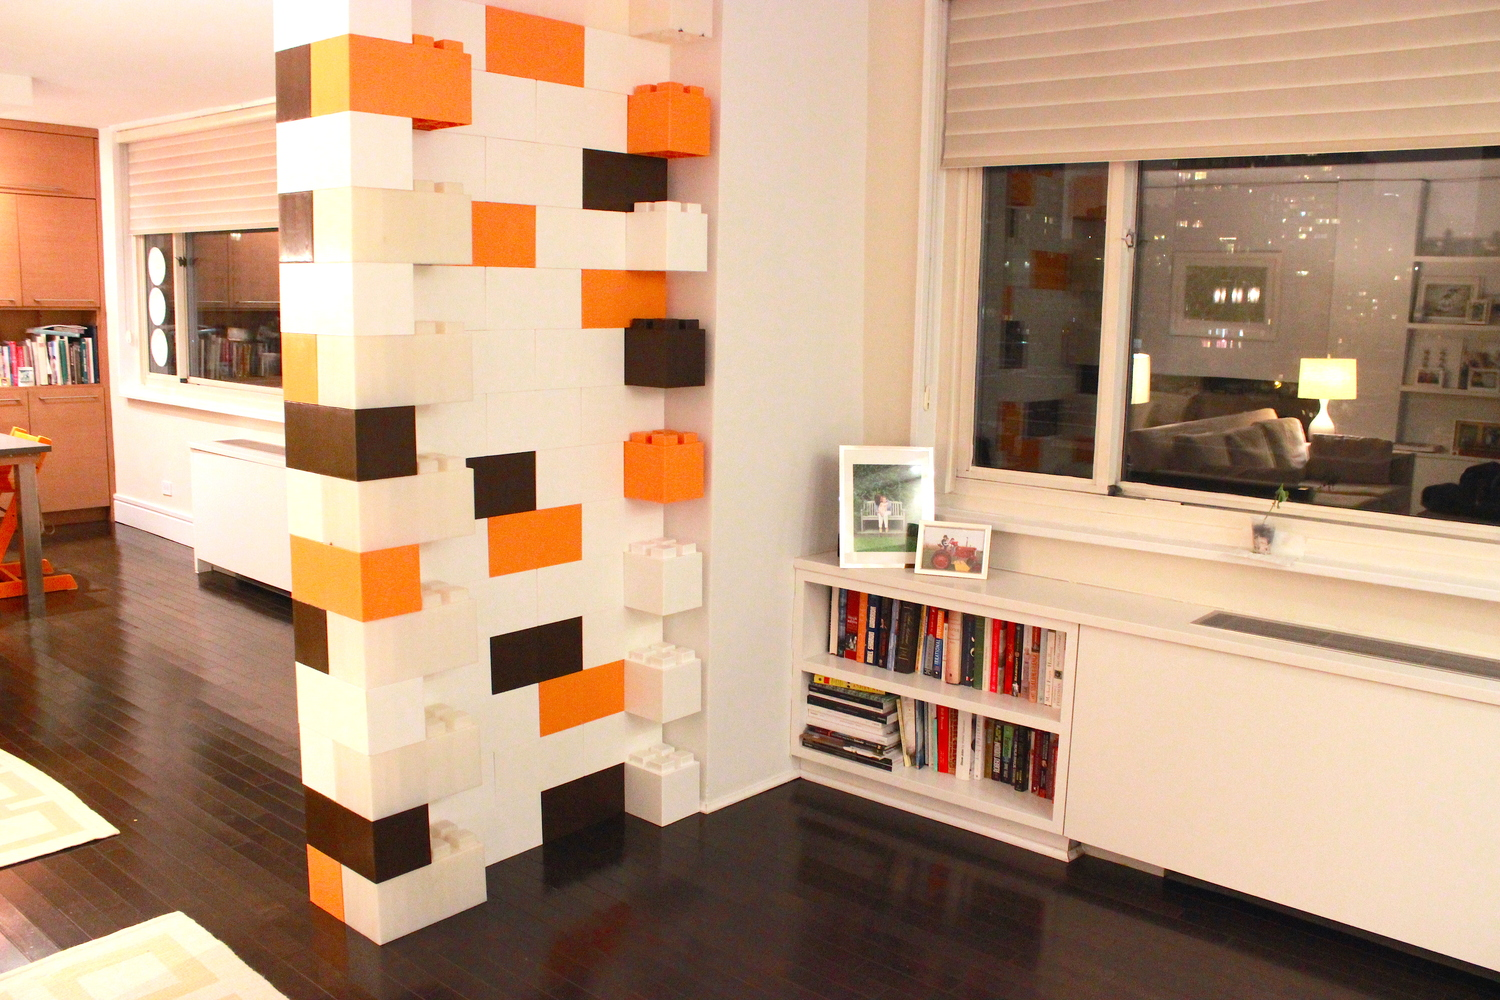 An accent wall made of brown, orange, and white EverBlocks, which look like big LEGO bricks.